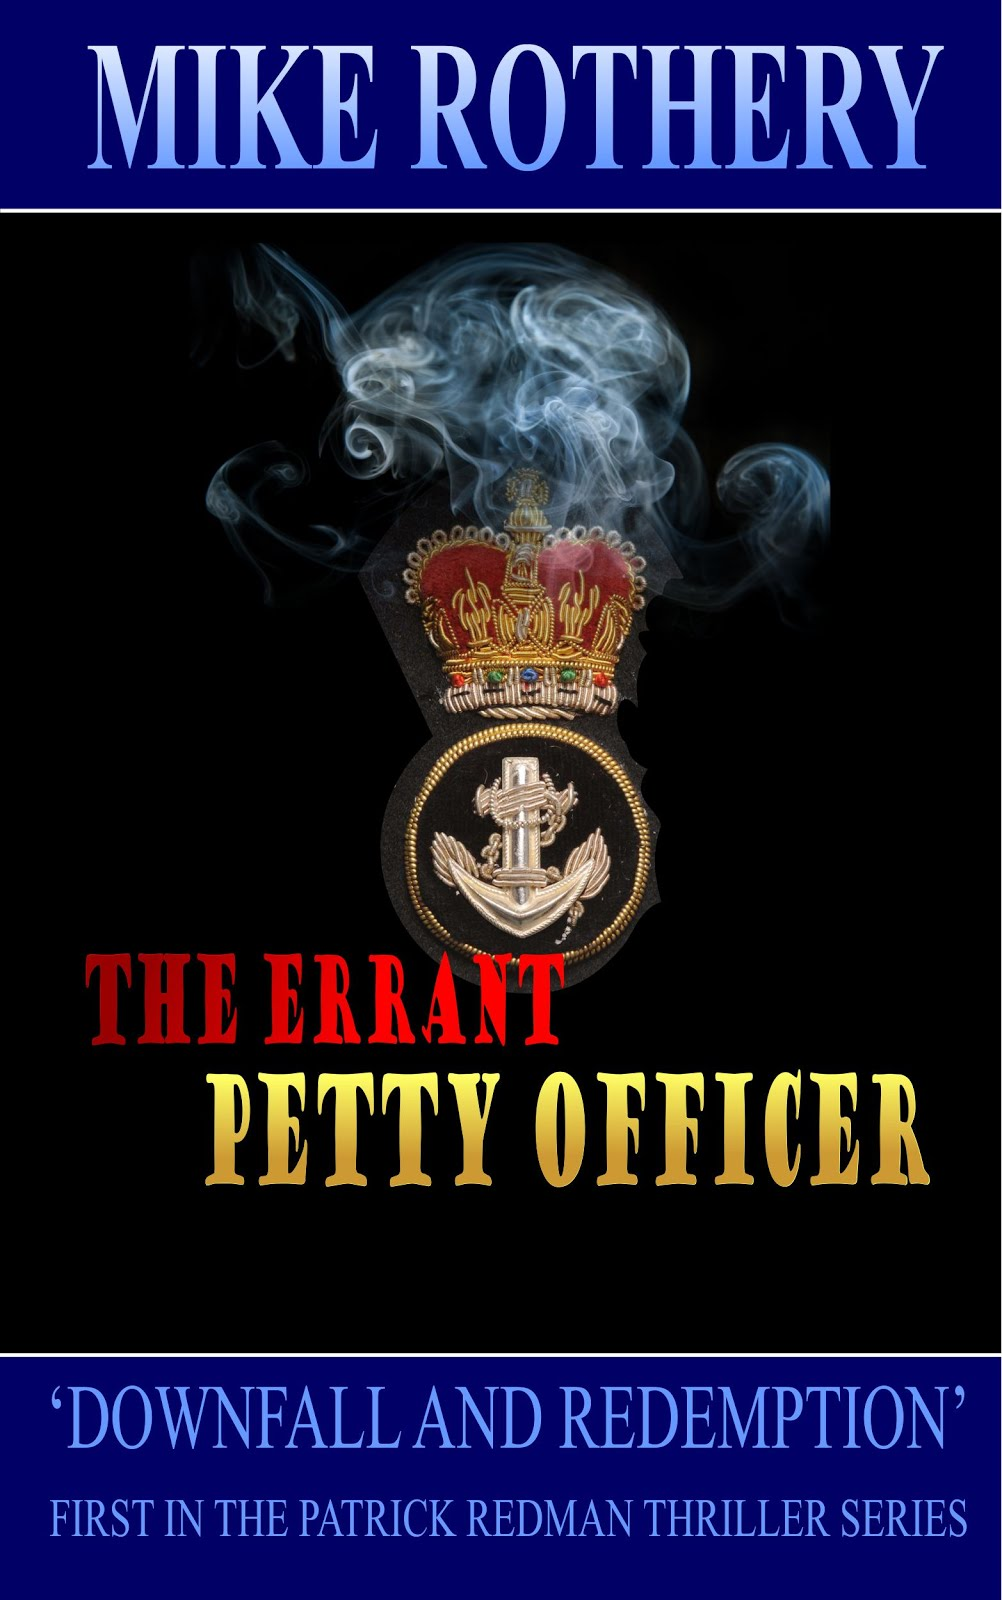 The Errant Petty Officer